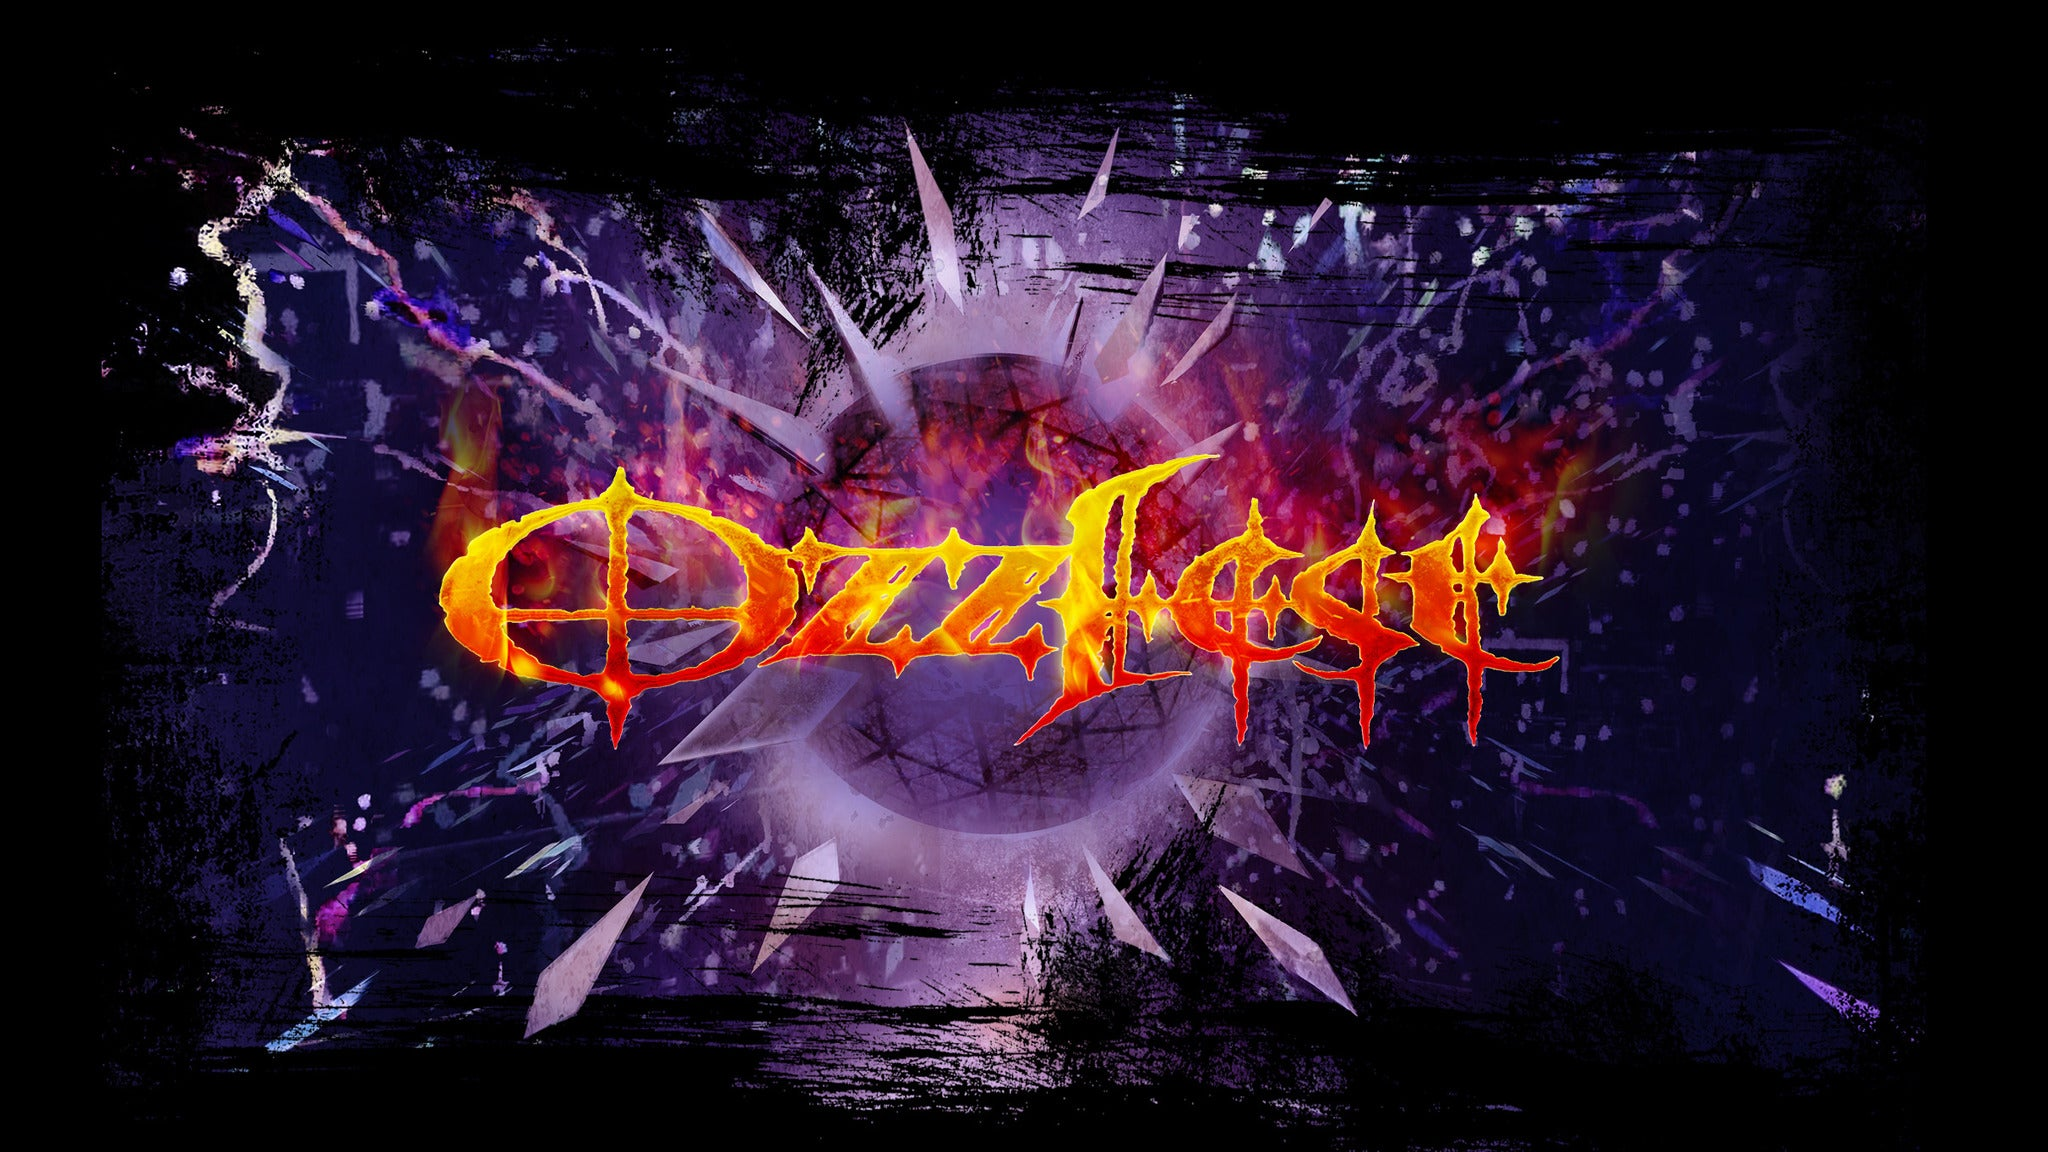 OZZFEST 2018 at The Forum